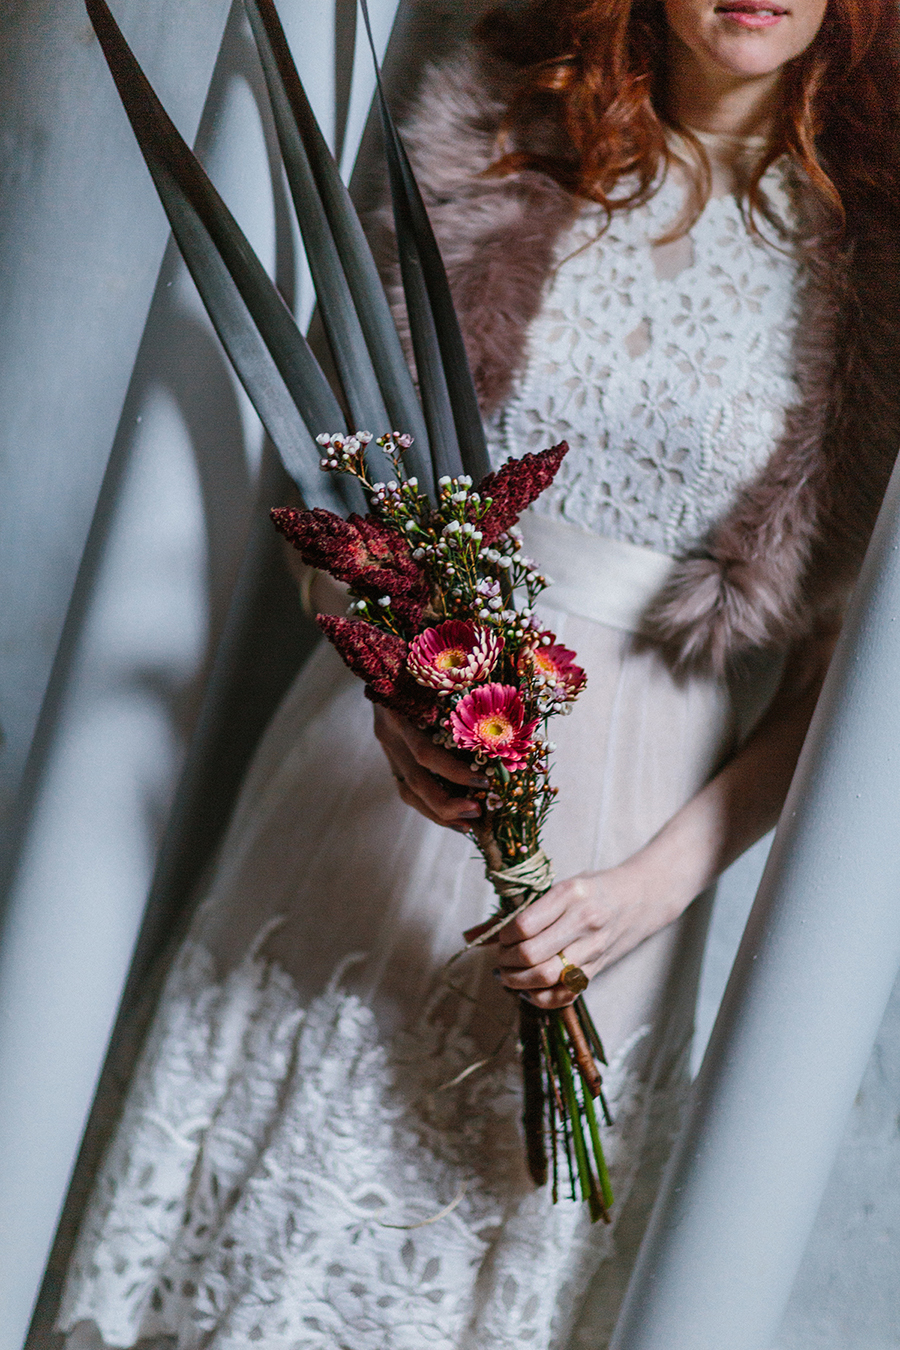 styled-shoot-therese-winberg04.jpg